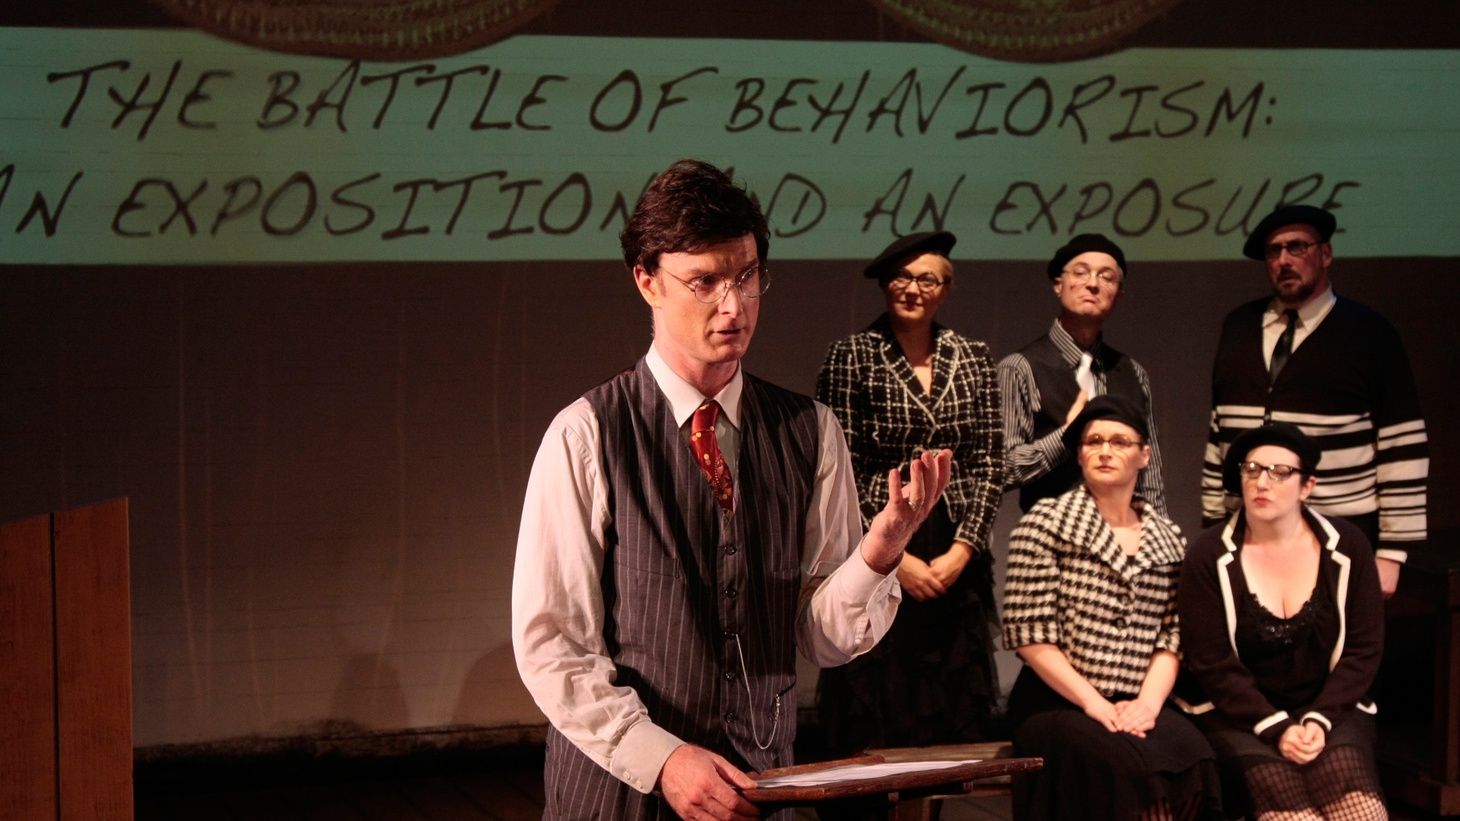 From director Matt Almos and co-director Ken Roht, whose signature joyful style is intact but somehow clearer; to the always grounded Hugo Armstrong who plays Broadus and strings together 20 years of work in a single night; to the uniformly stunning cast: this is LA's intimate theater at its complicated best.